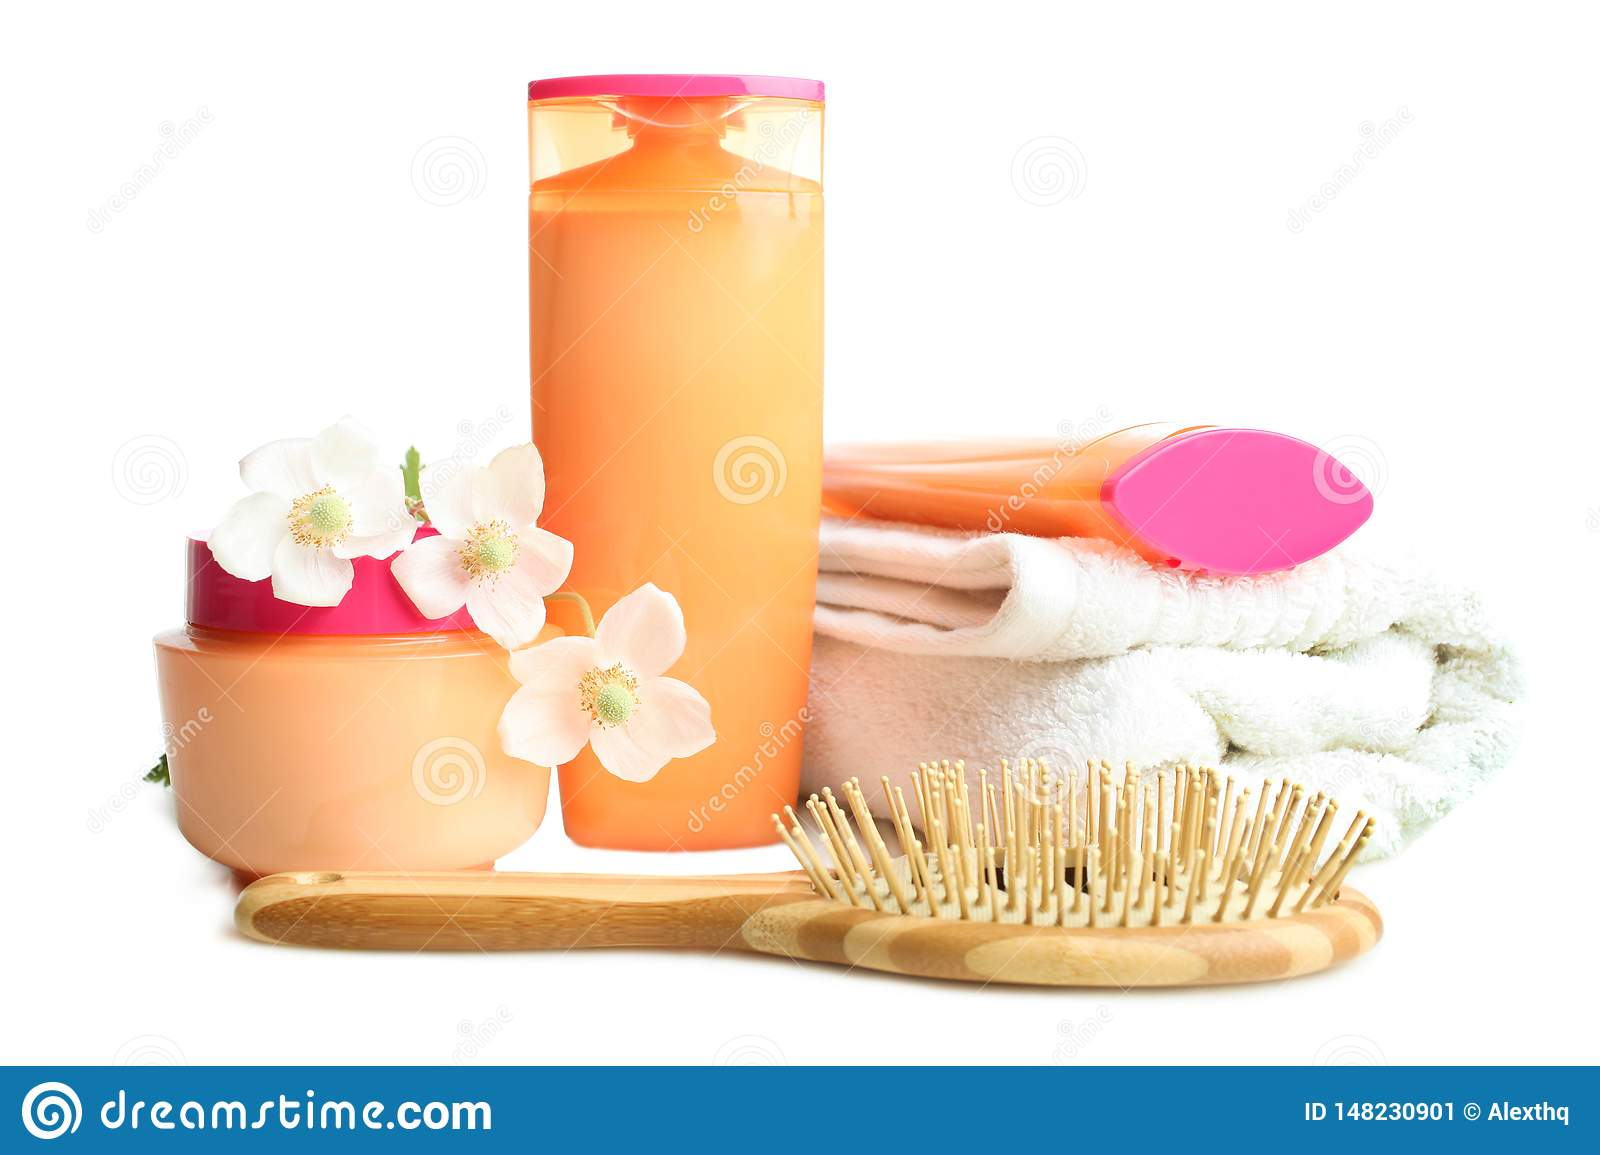 set-hair-care-products-bamboo-comb-terry-towel-isolated-white-148230901.jpg